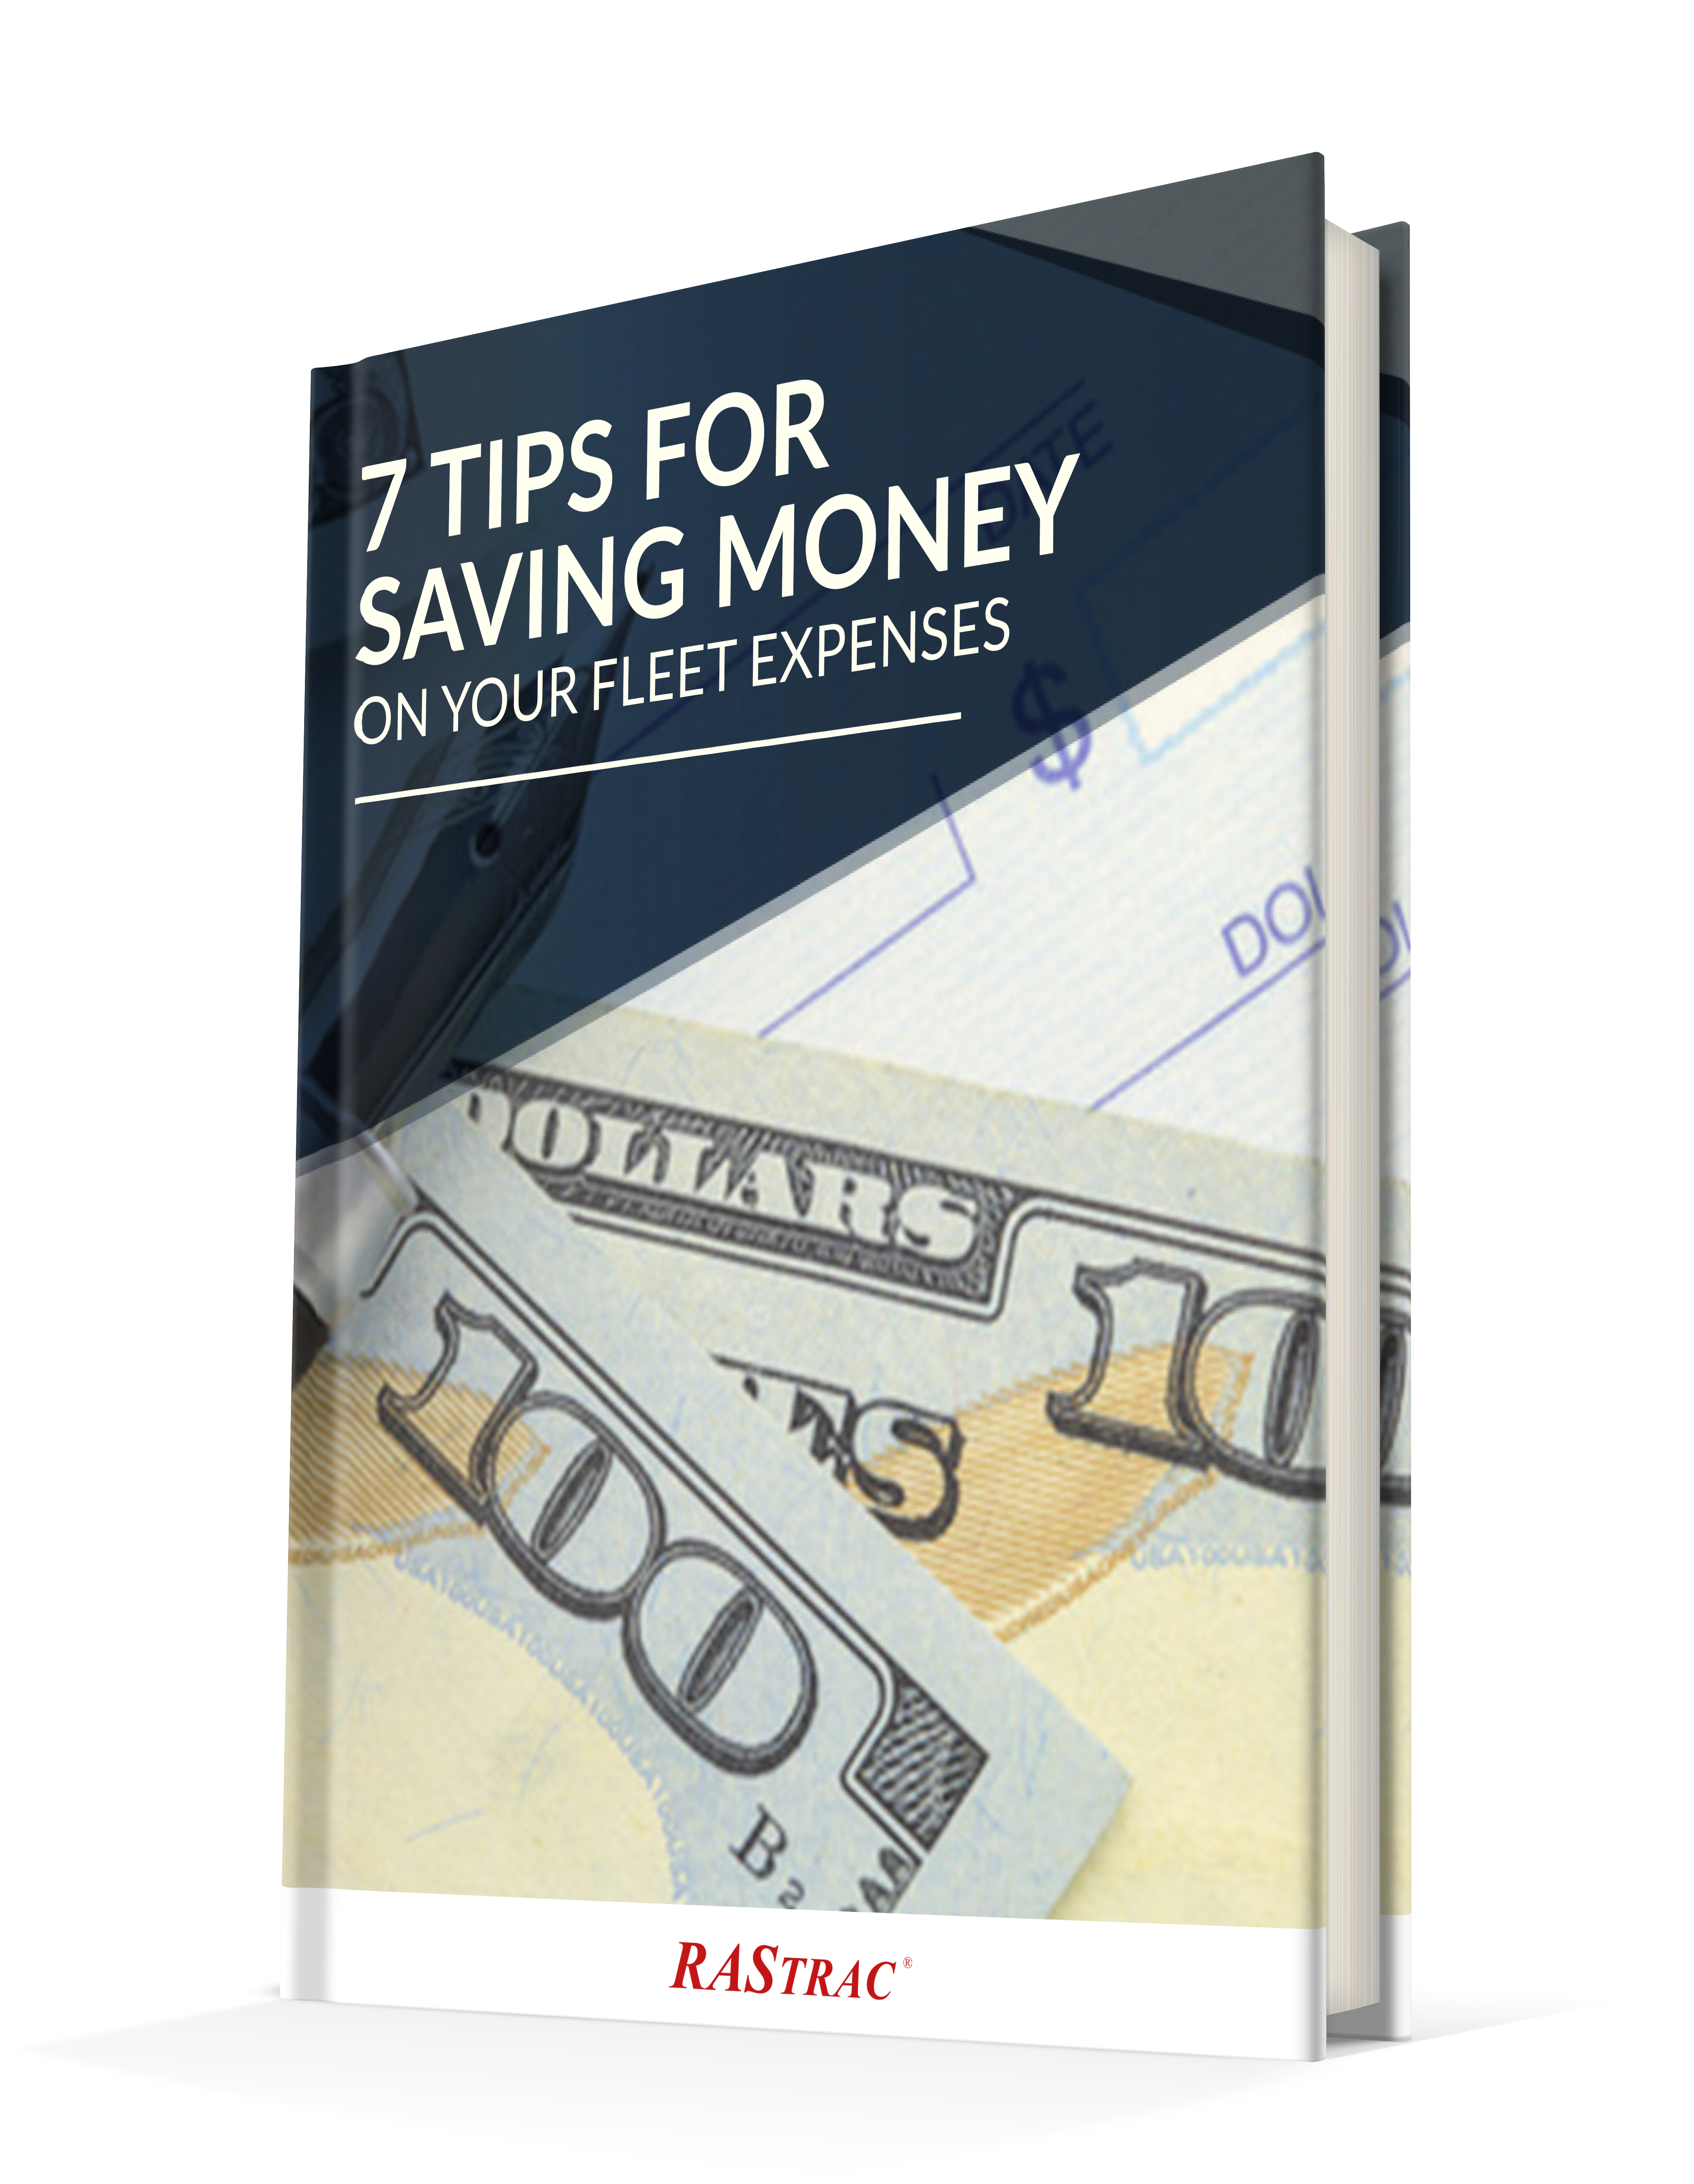 7 Tips for Saving Money on Your Fleet Expenses